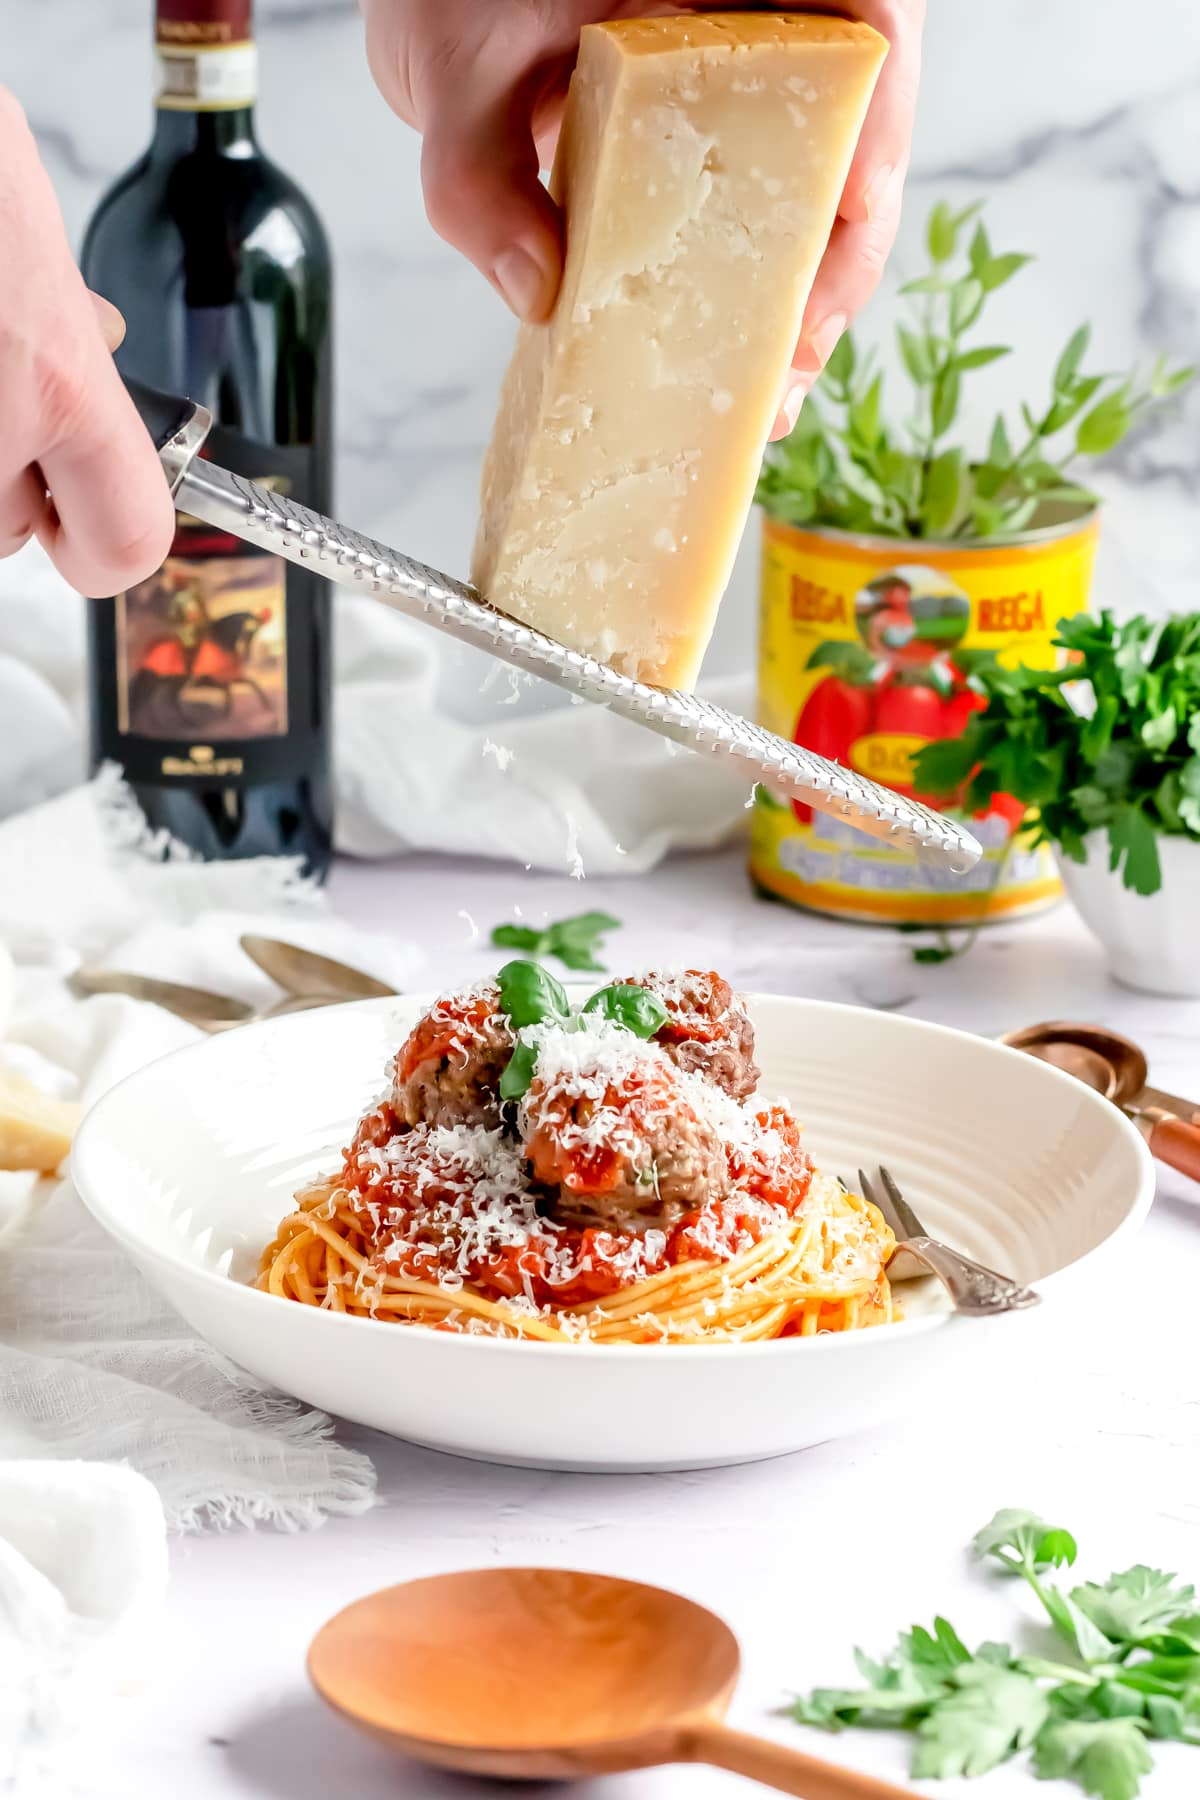 grating parmesan cheese over spaghetti and meatballs